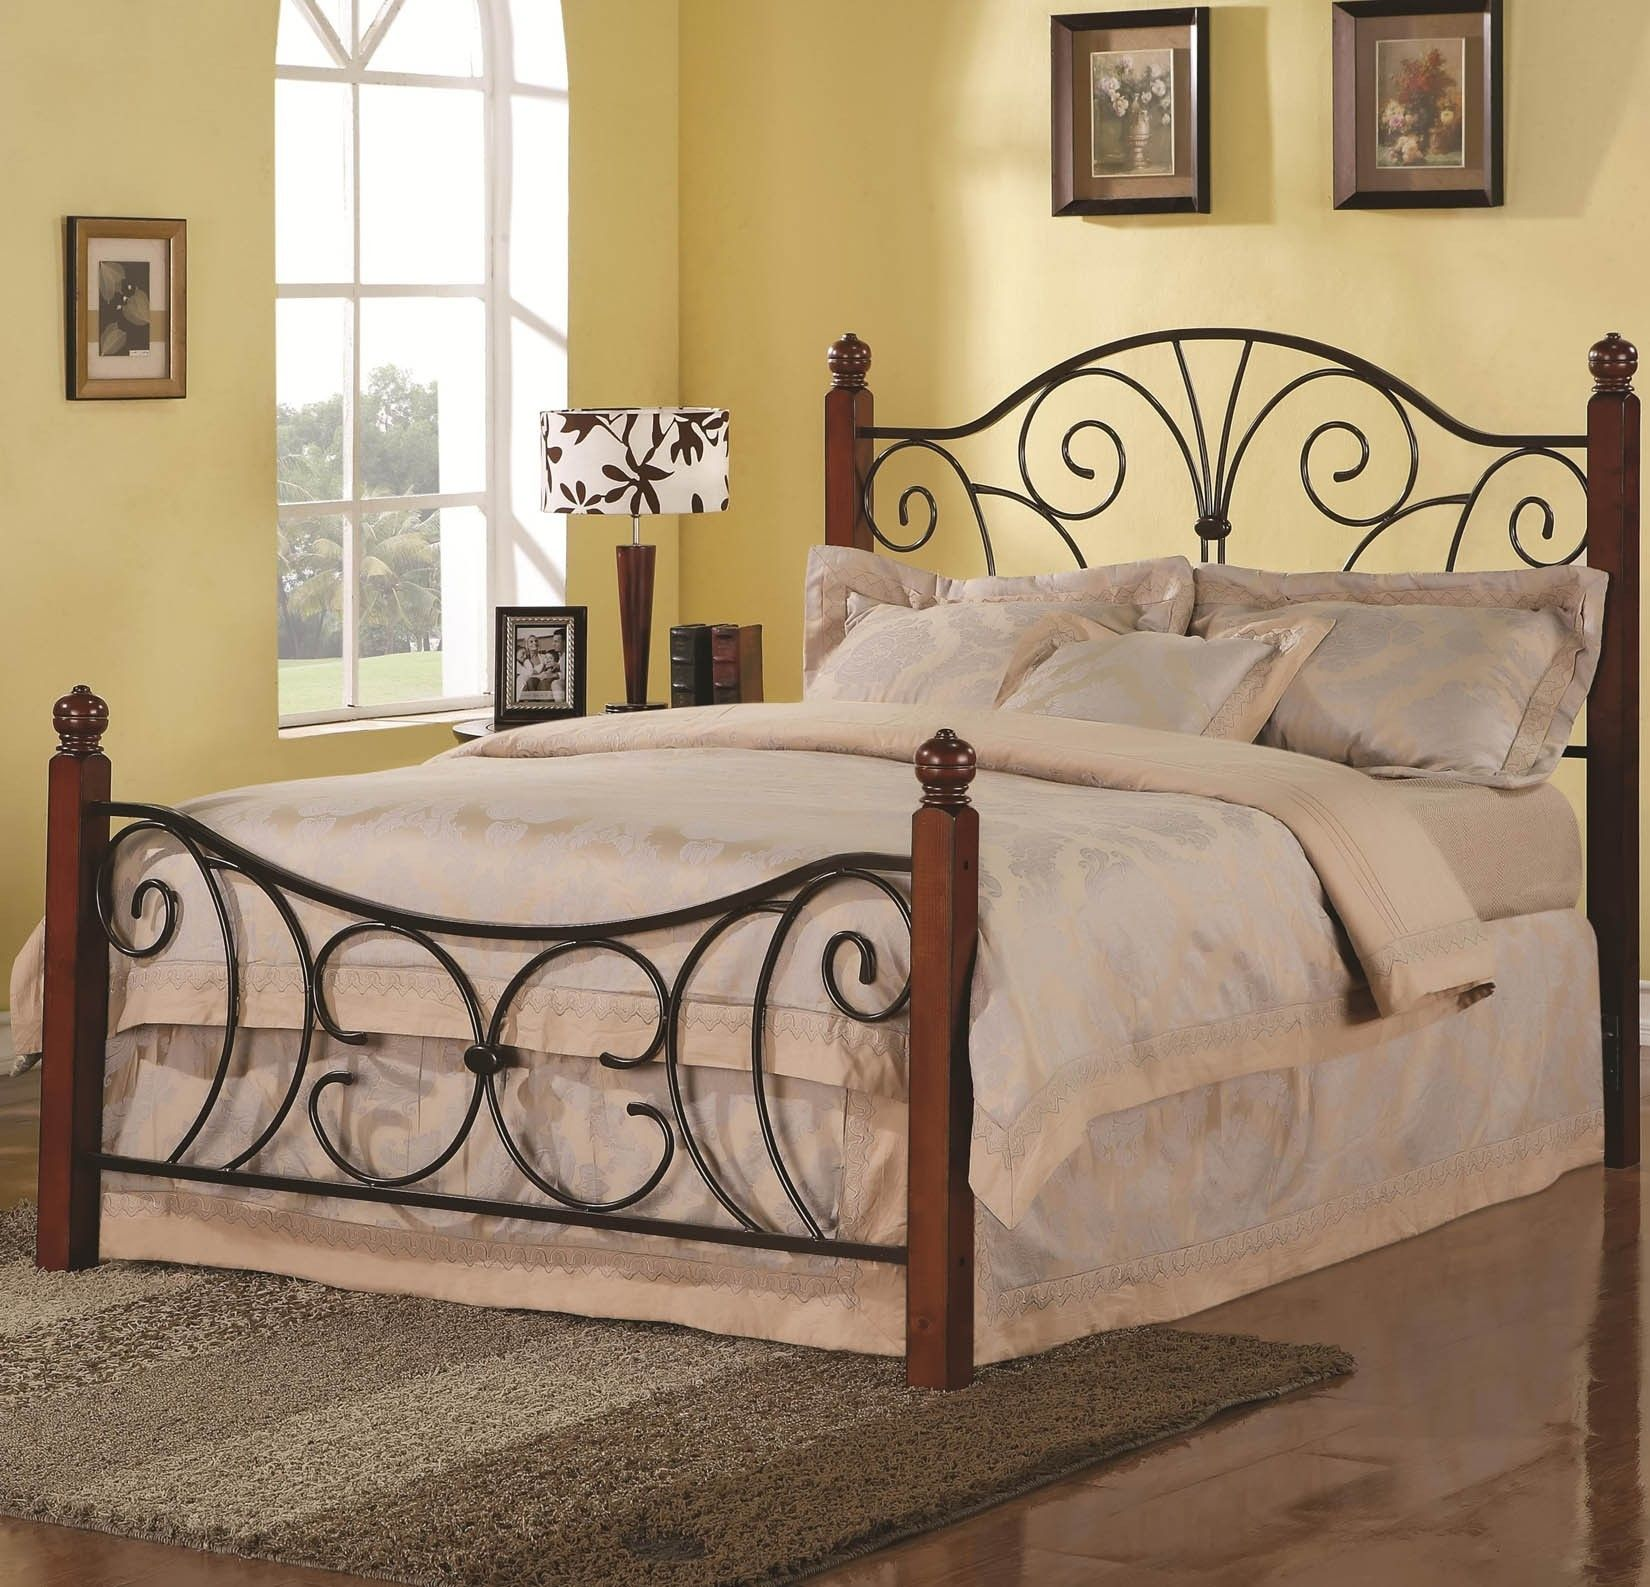 Black Iron Carving Bed With Headboard And Four Brown Wood